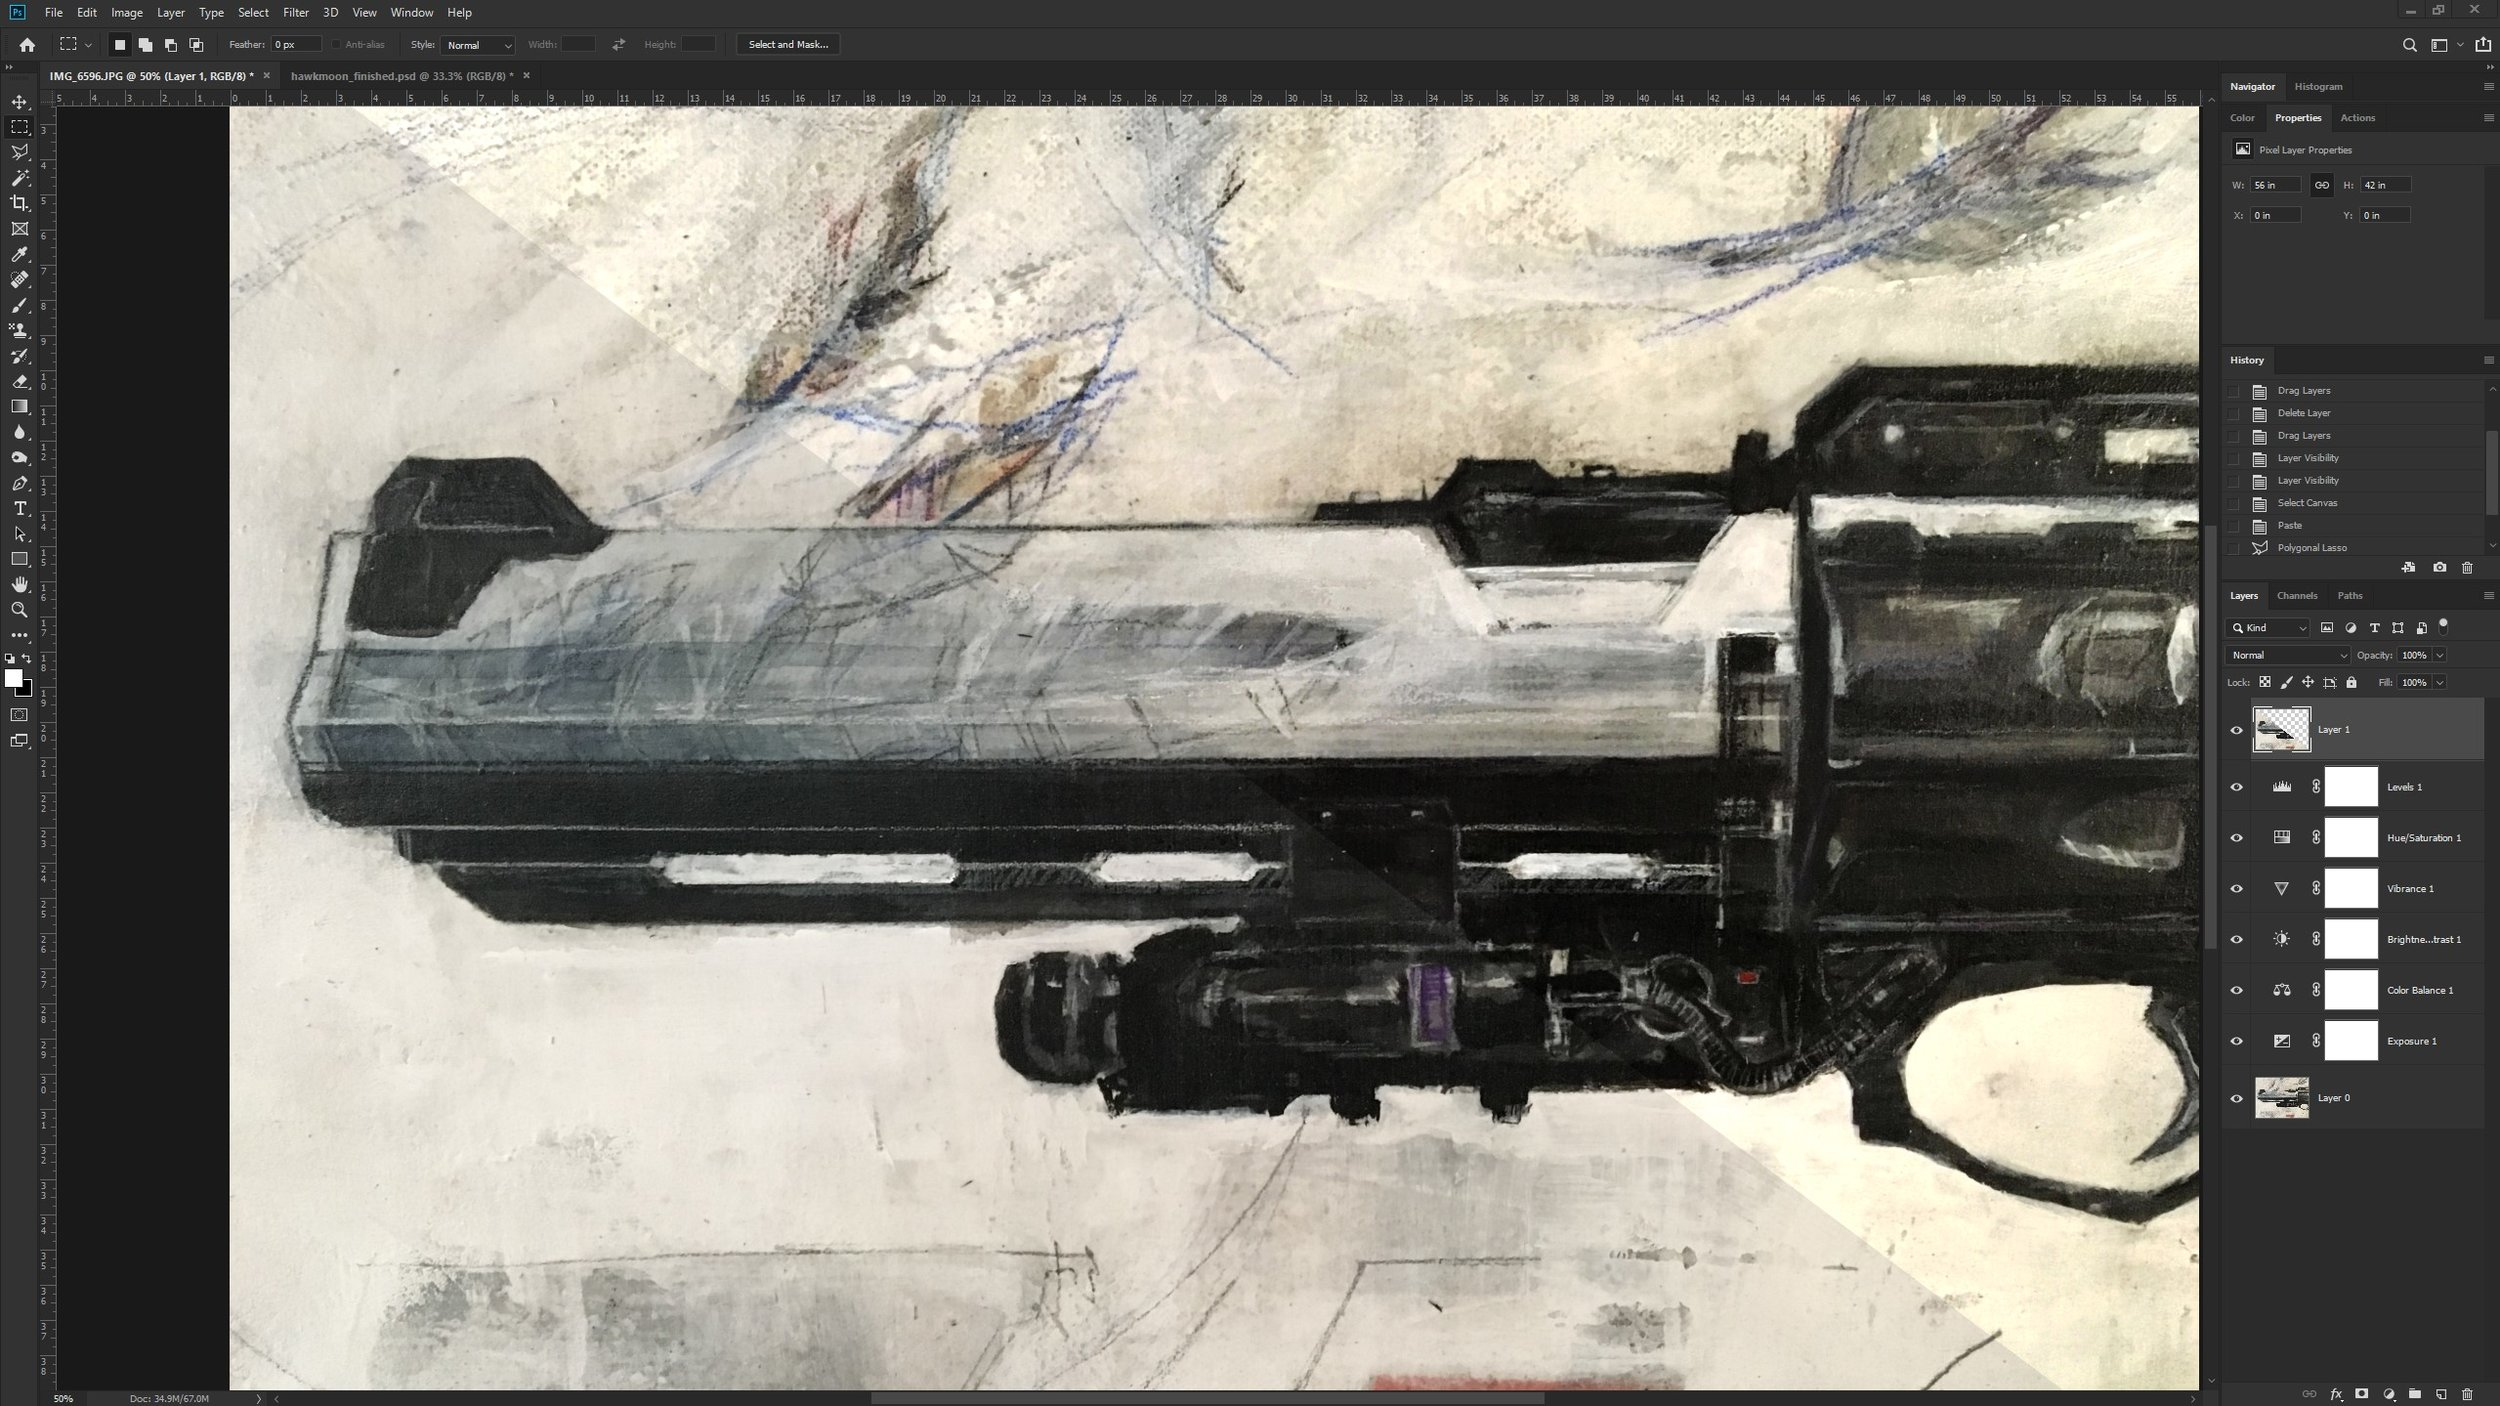 Photoshop edits of iPhone 6s preview shots of Hawkmoon painting. Left is untouched, right is filtered with  Image > Adjustment commands on individual layer masks.